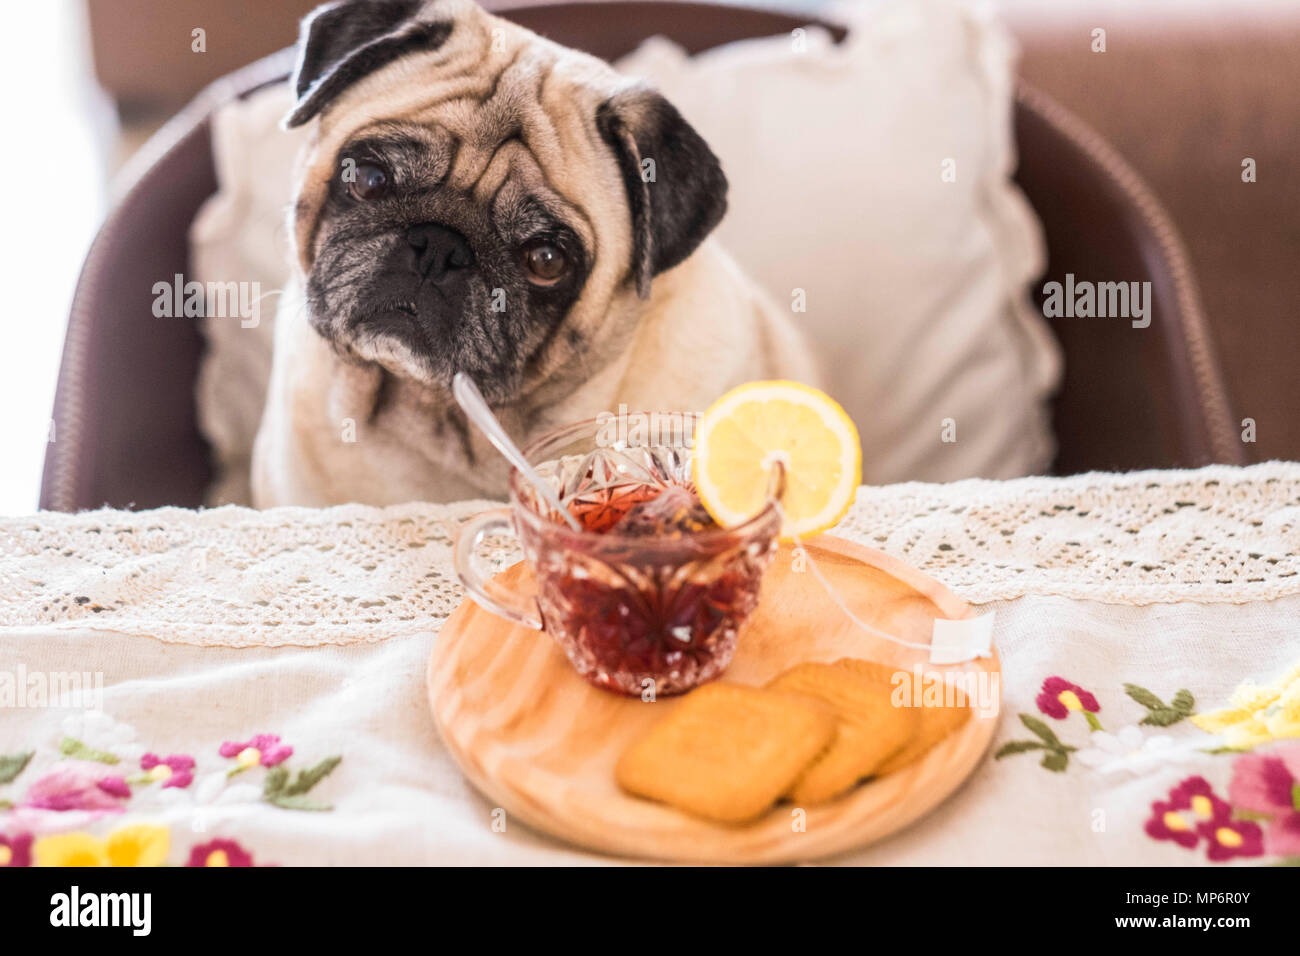 tea time at home in the afternoon for a funny dog pug sit down at the table. looking to you with curiosity and some biscuits food on the table - Stock Image